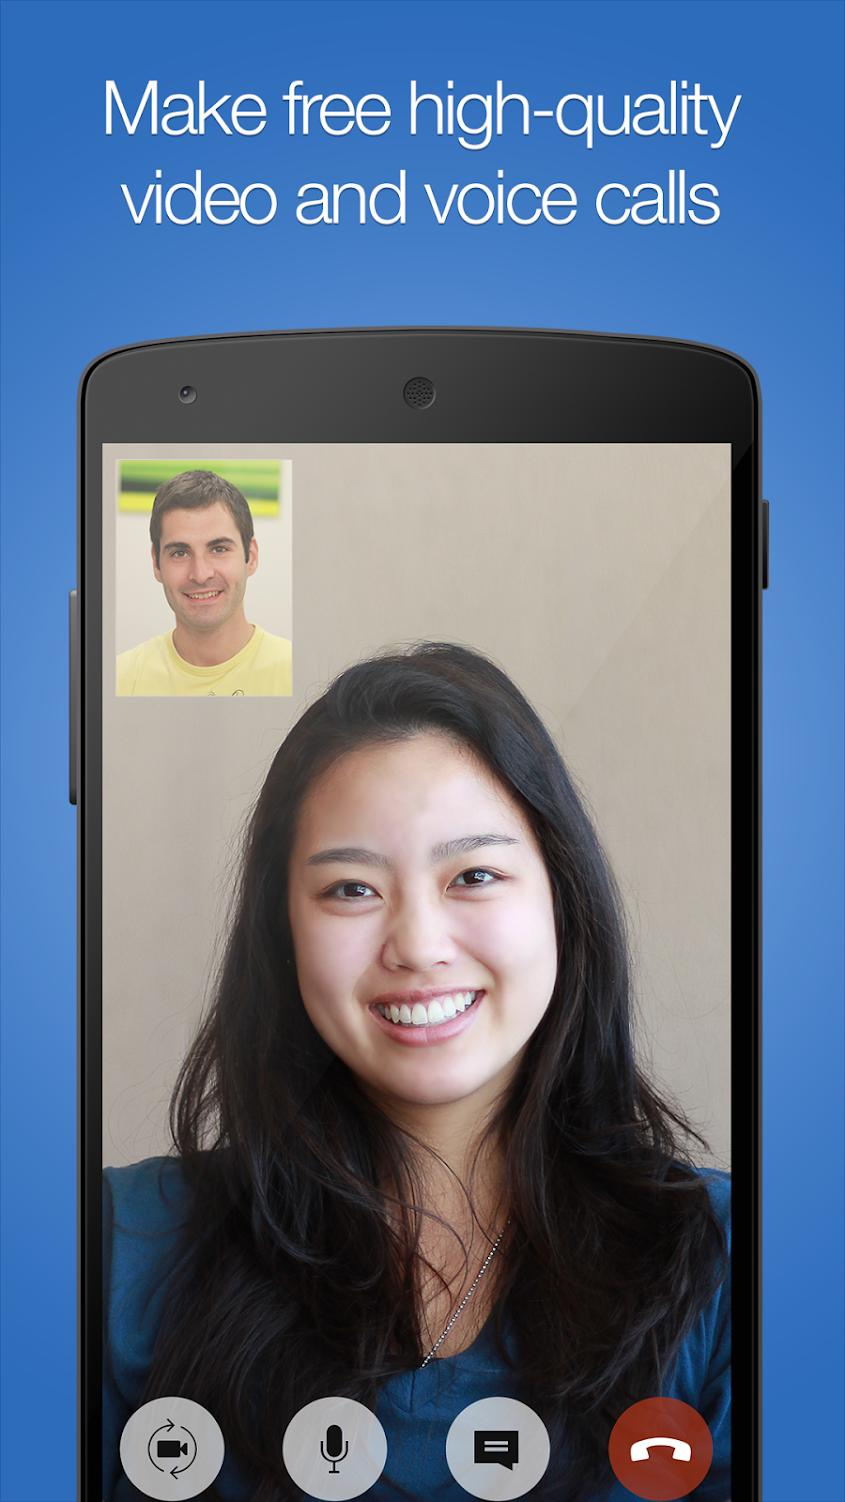 imo free HD video calls and chat for Android - APK Download